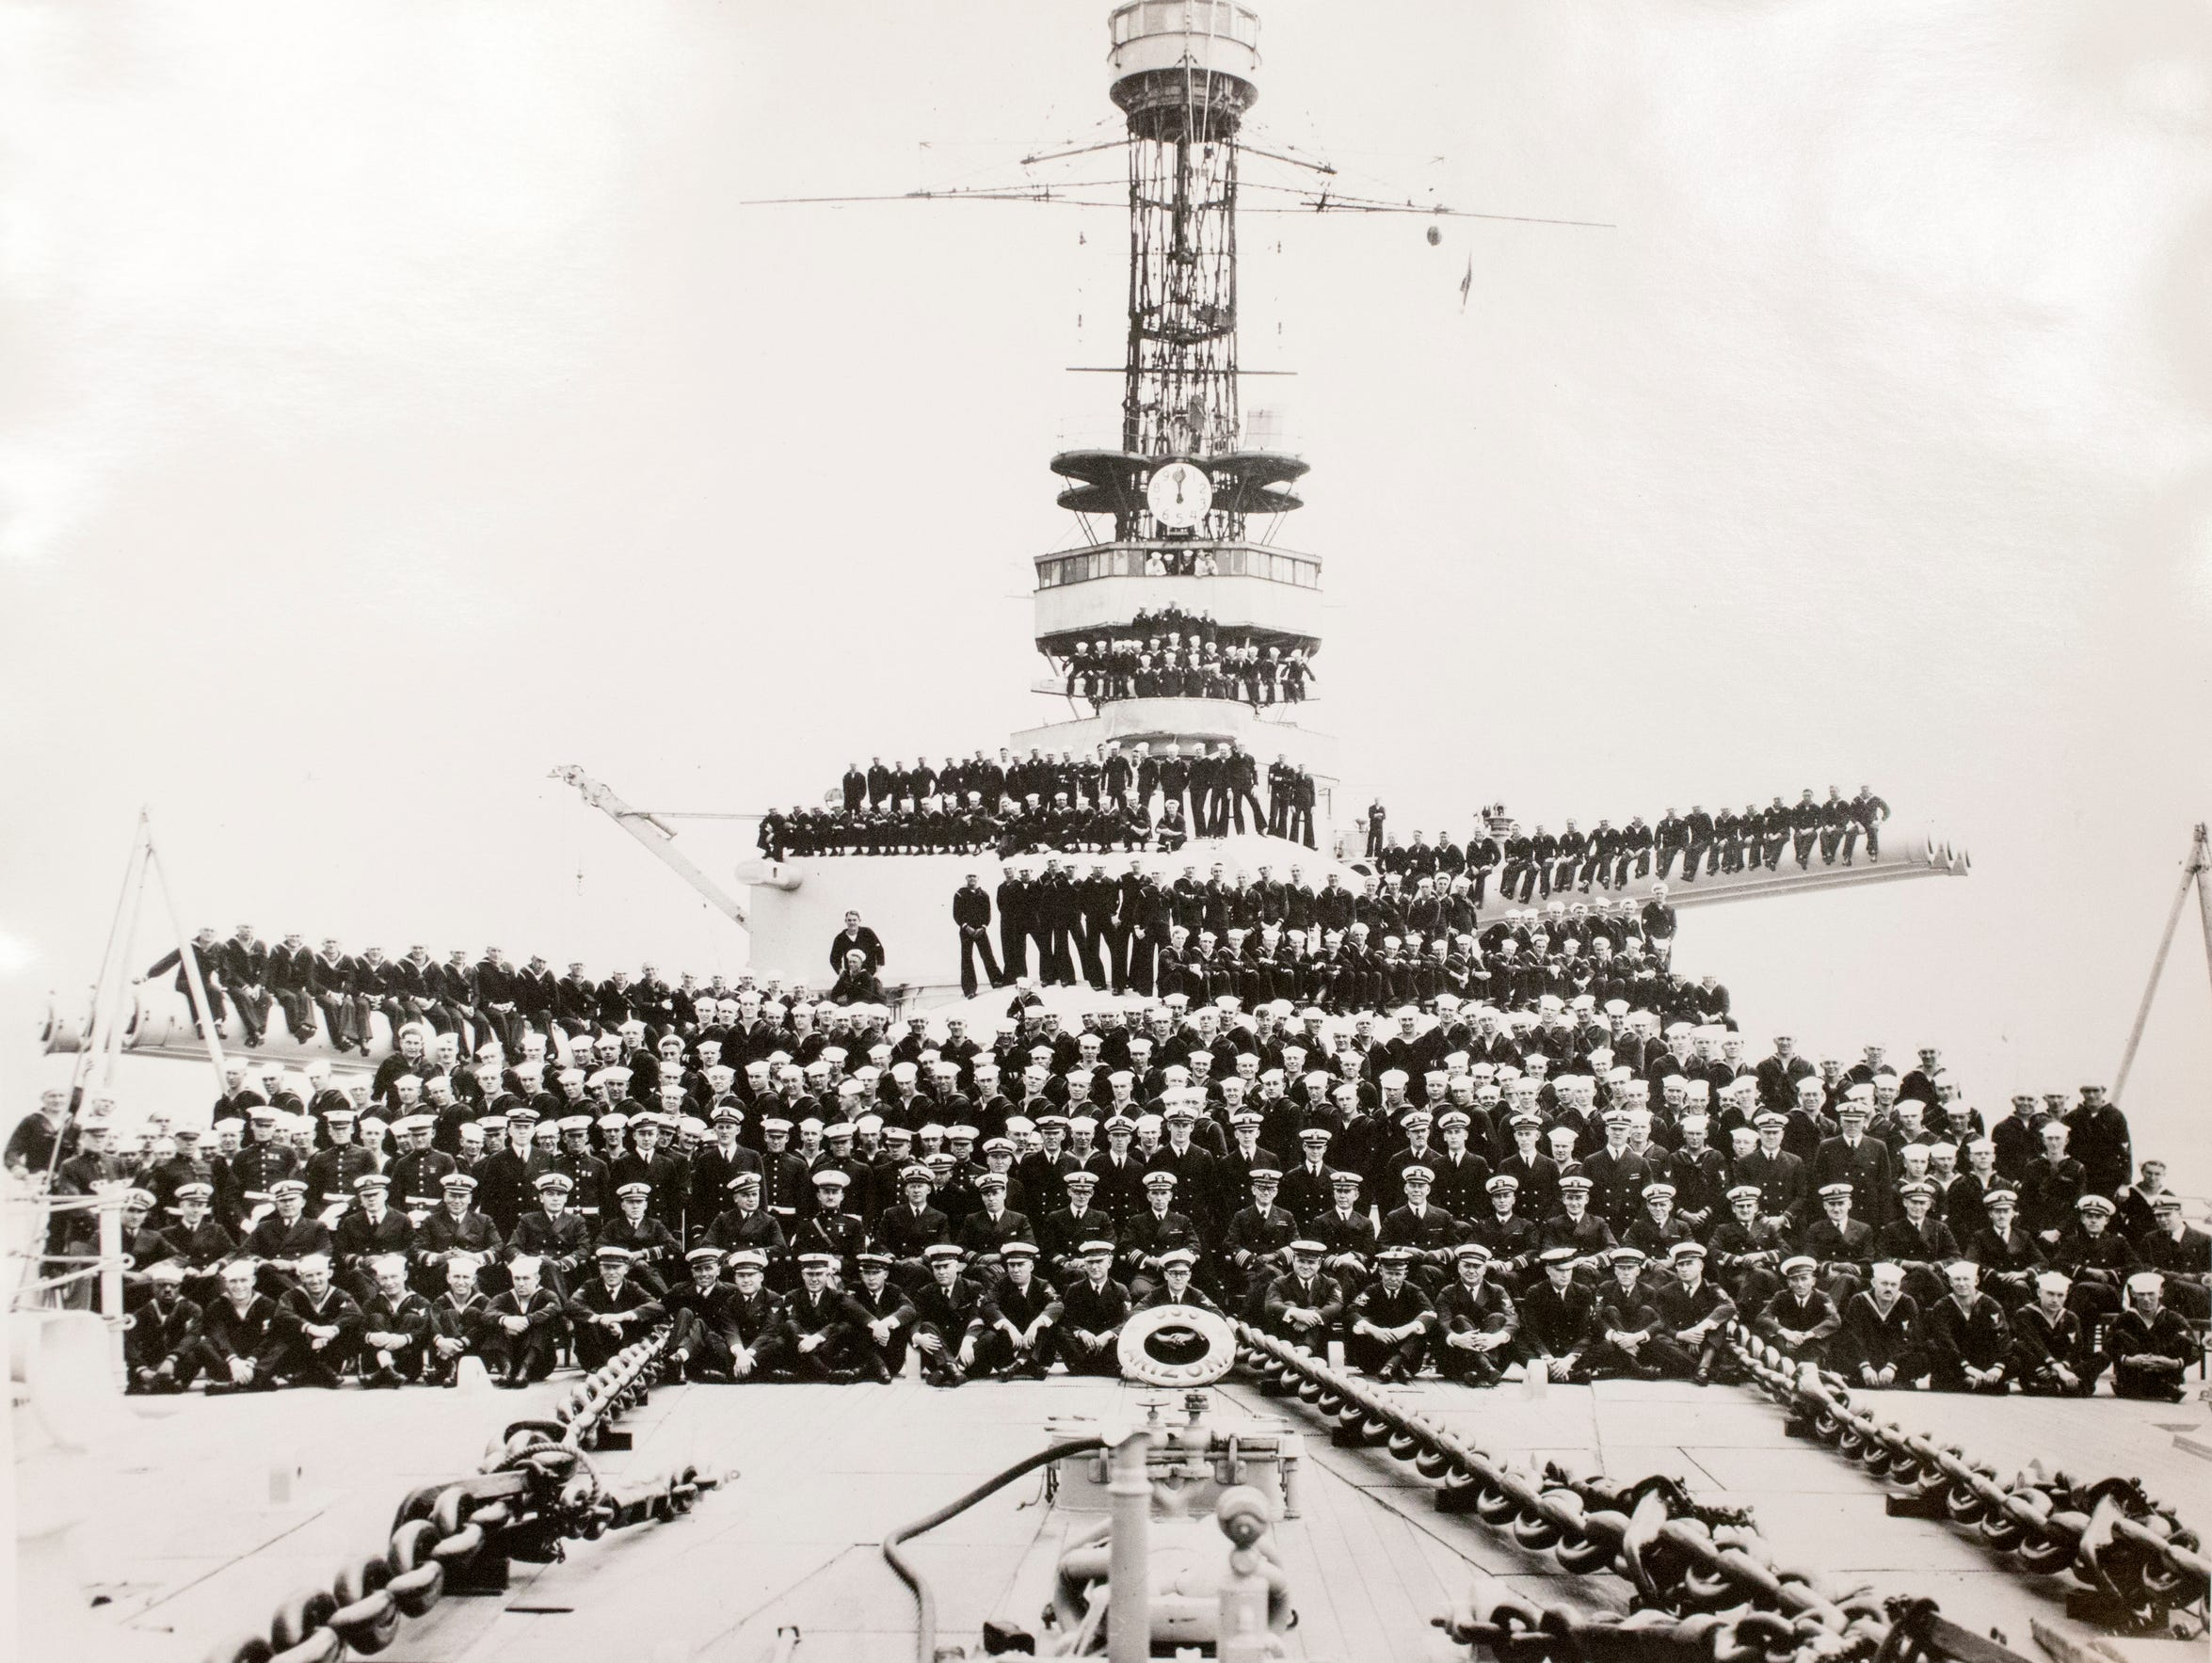 An undated crew photo in the early days of the battleship.